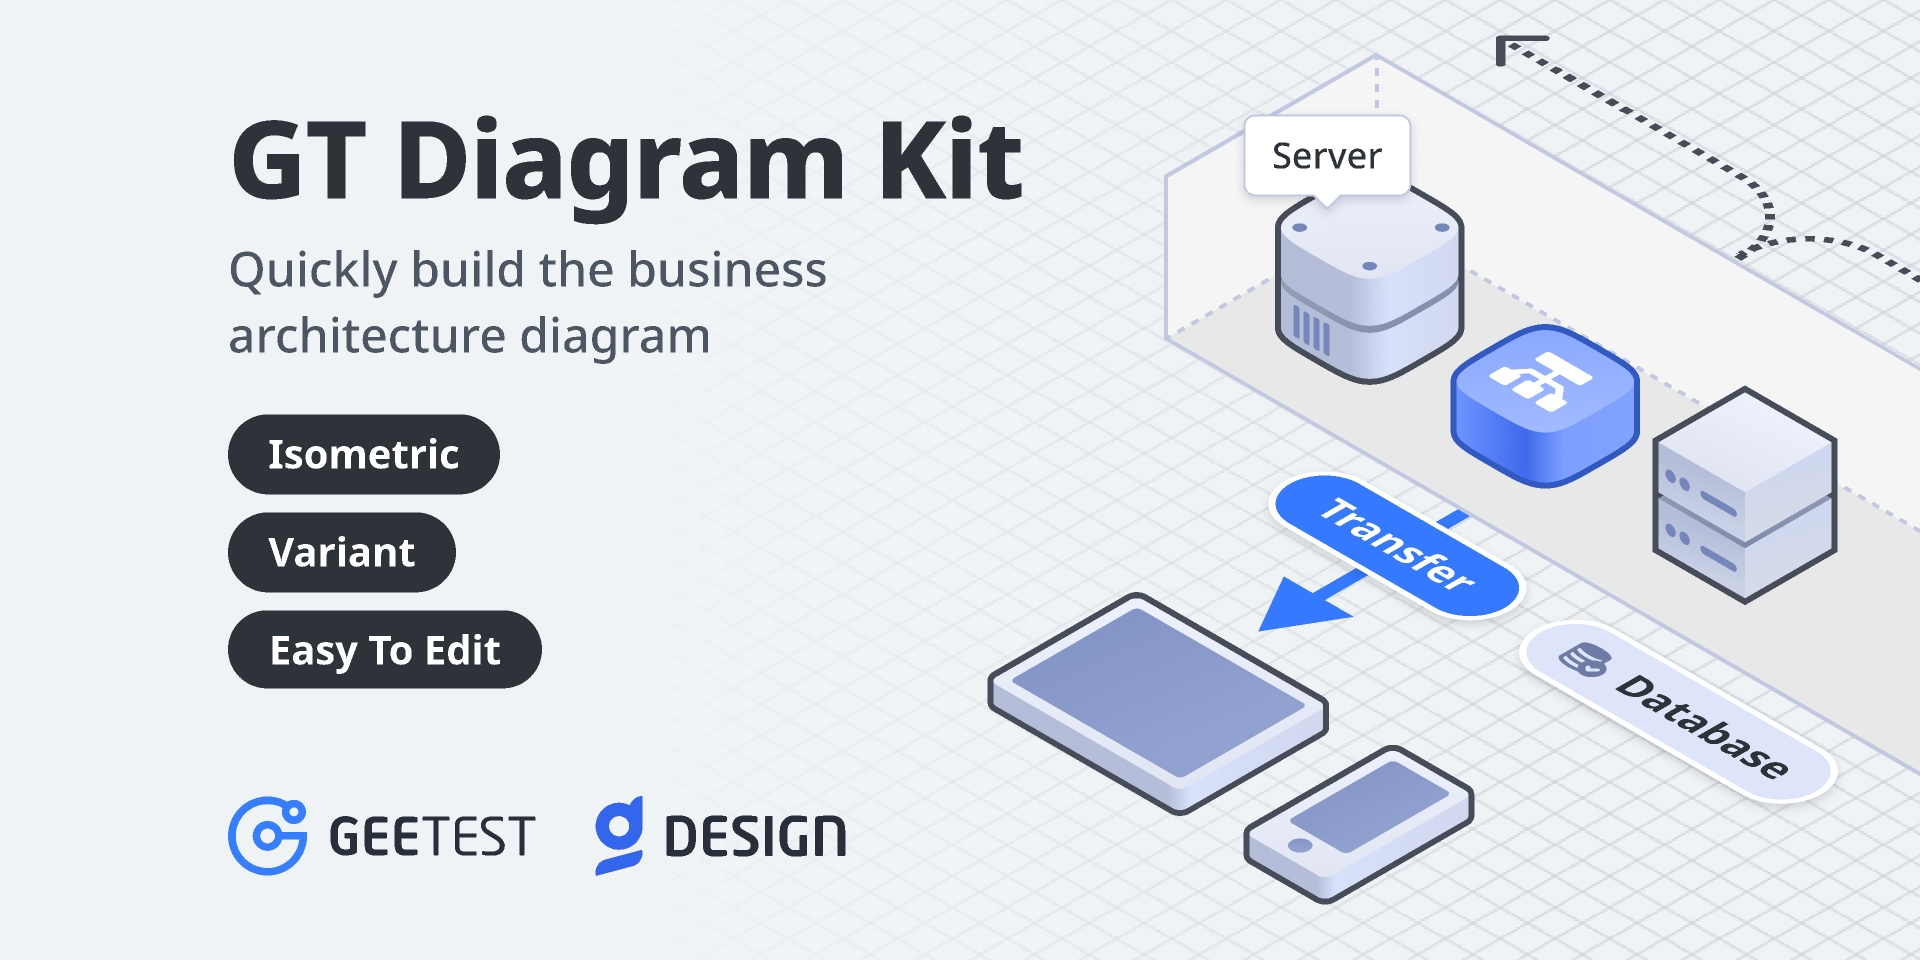 GT Diagram Kit-Isometric Style from UIGarage